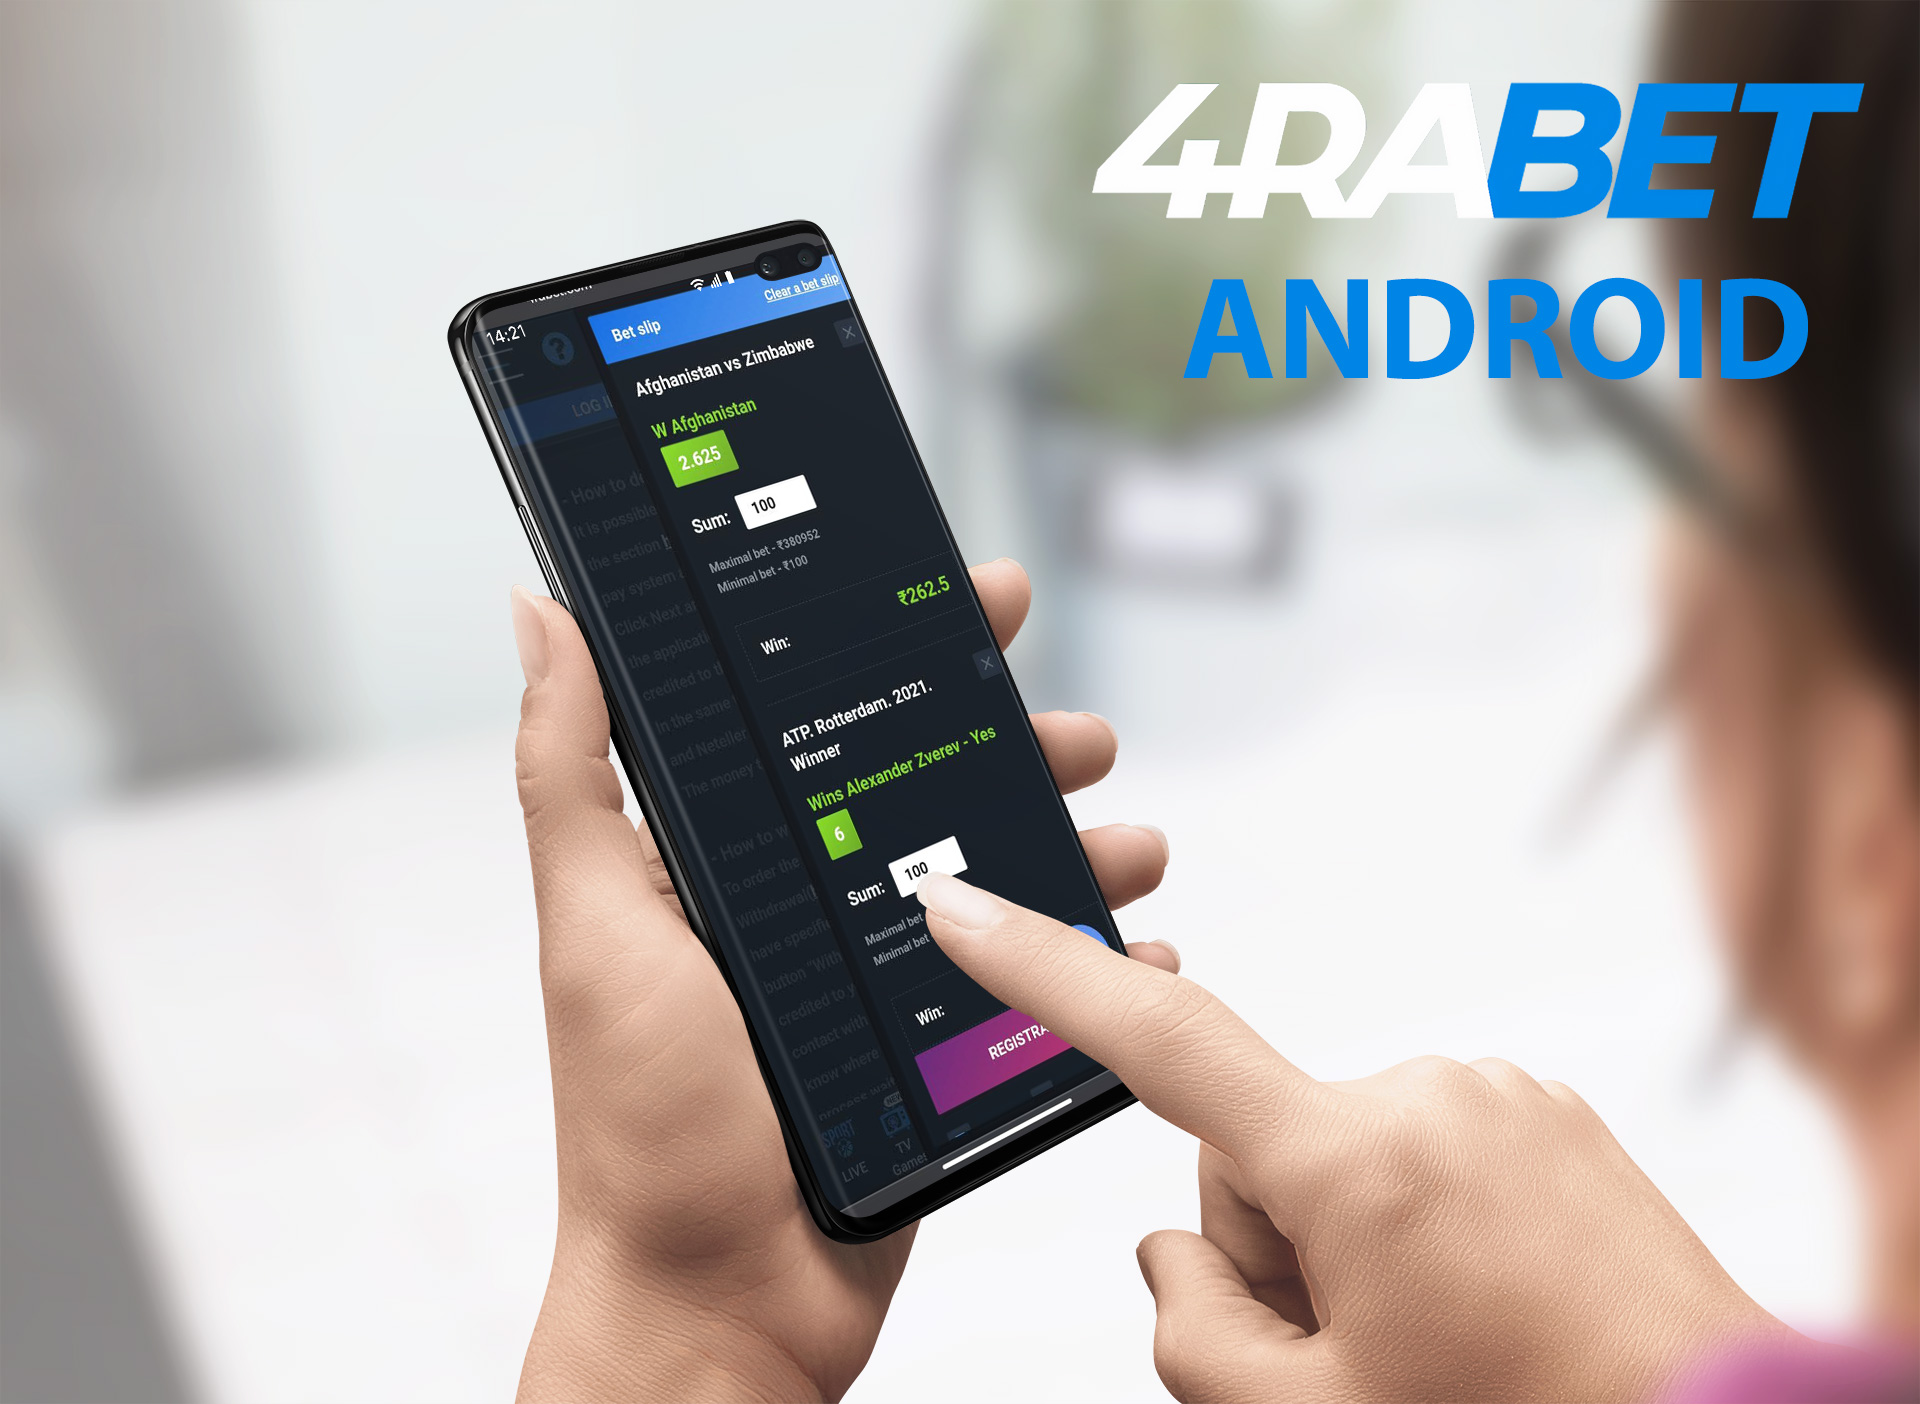 4rabet apk for Android.